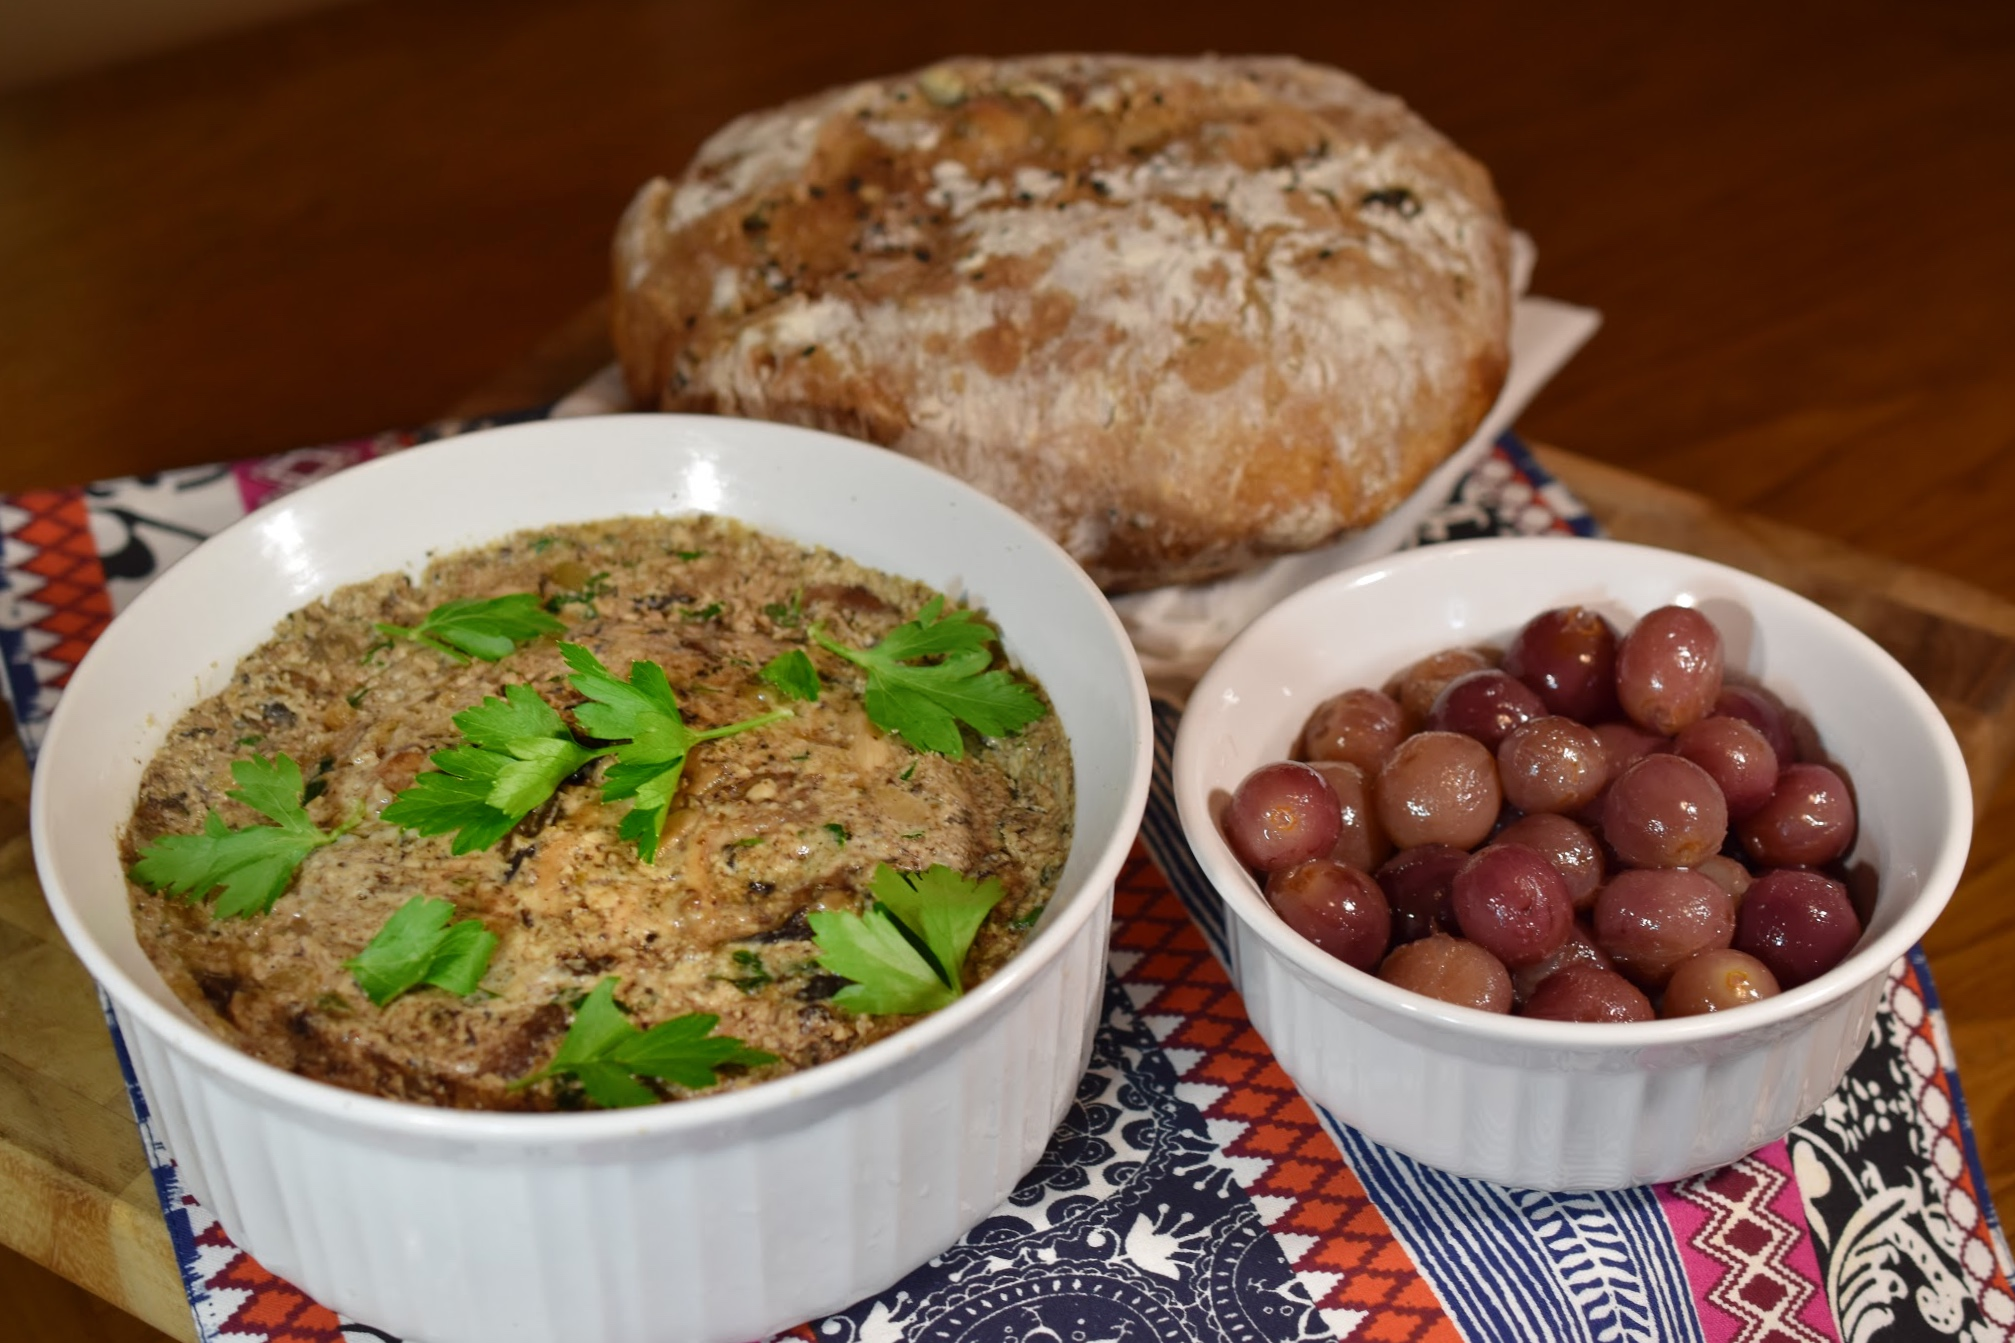 Mushroom Terrine with Grape Compote